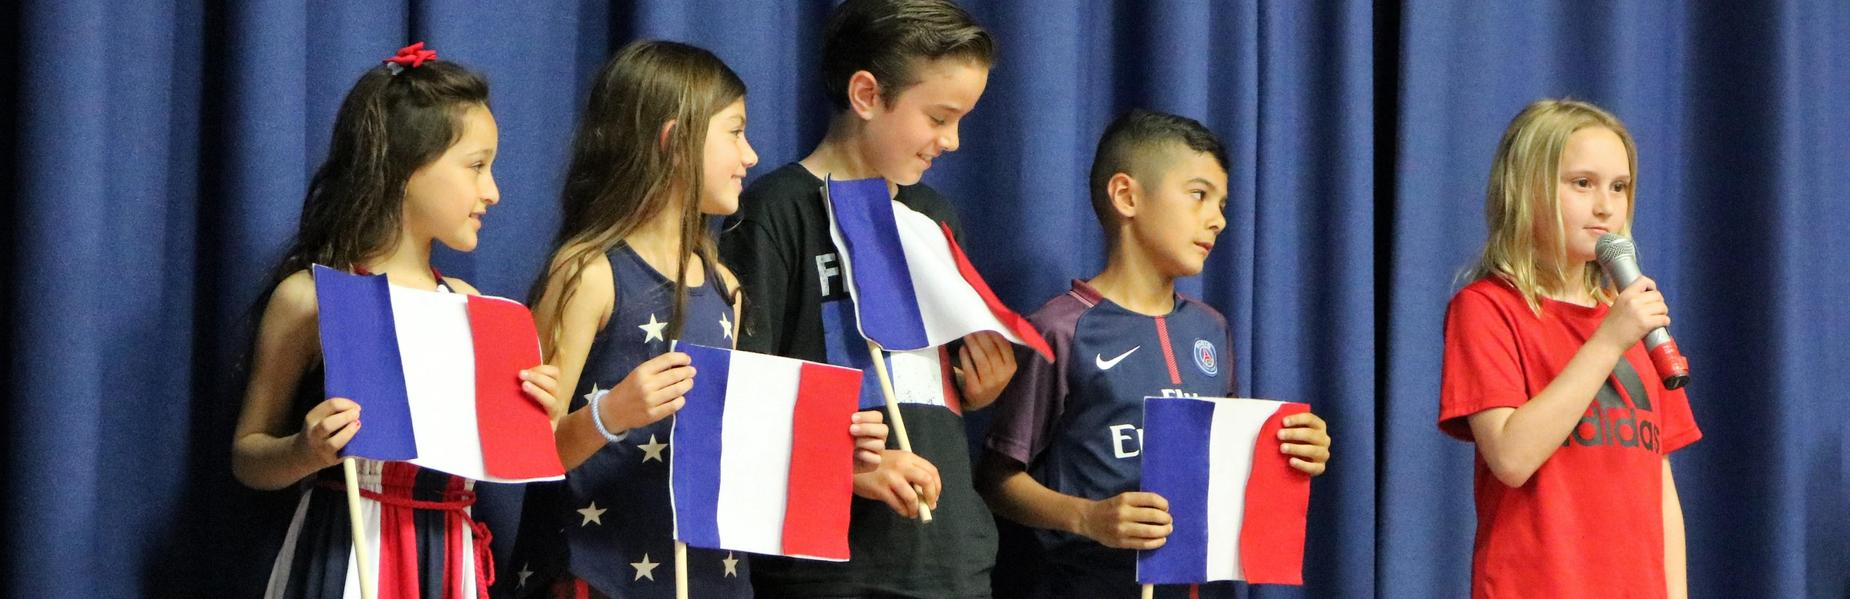 Photo of McKinley 3rd graders representing the Netherlands at an International Celebration.